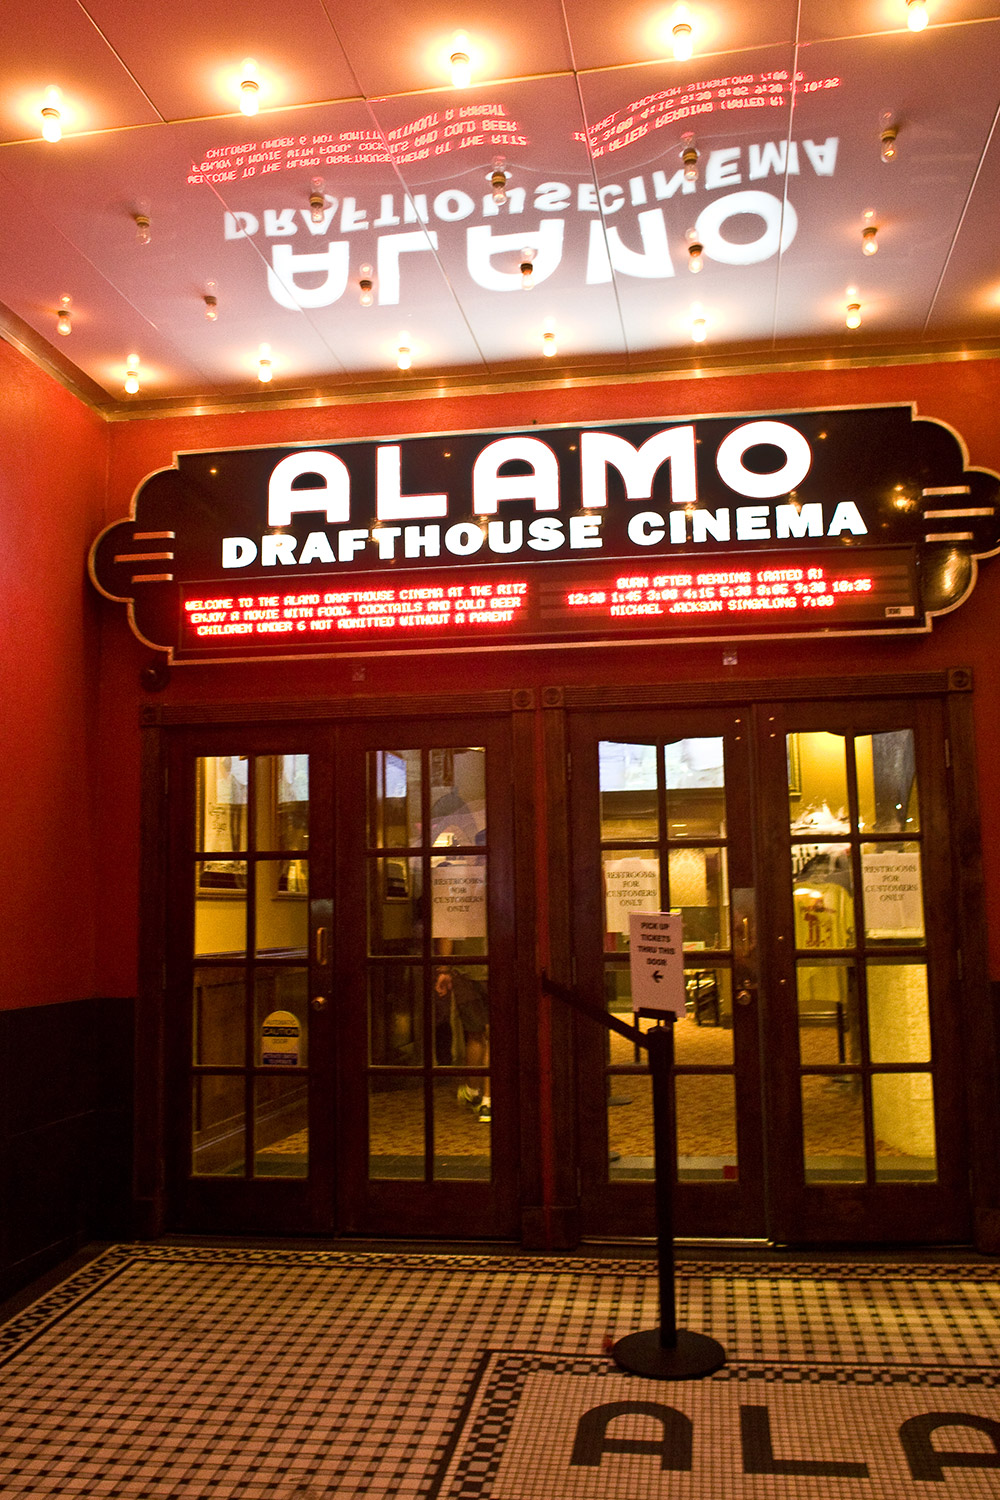 There is nothing like escaping the afternoon heat for the ice-cold AC and darkness of a movie theater. Austin is home to the bAlamo Drafthouse/b, one of the coolest movie theaters in the U.S. brbrThe Alamo is loved by everyone from Hollywood directors and actors who premiere their films there during SXSW and Fantastic Fest to Austin locals who come out ien masse/i for quirky quote-alongs of cult classics and crazy eight-hour Lord of the Ring movie marathons. brbrThe Alamo also loves food almost as much as film and serves it (delicious, real food) along with cold beers and cocktails during their films. There are Alamo Drafthouses all across the nation now, but nothing beats the original one.